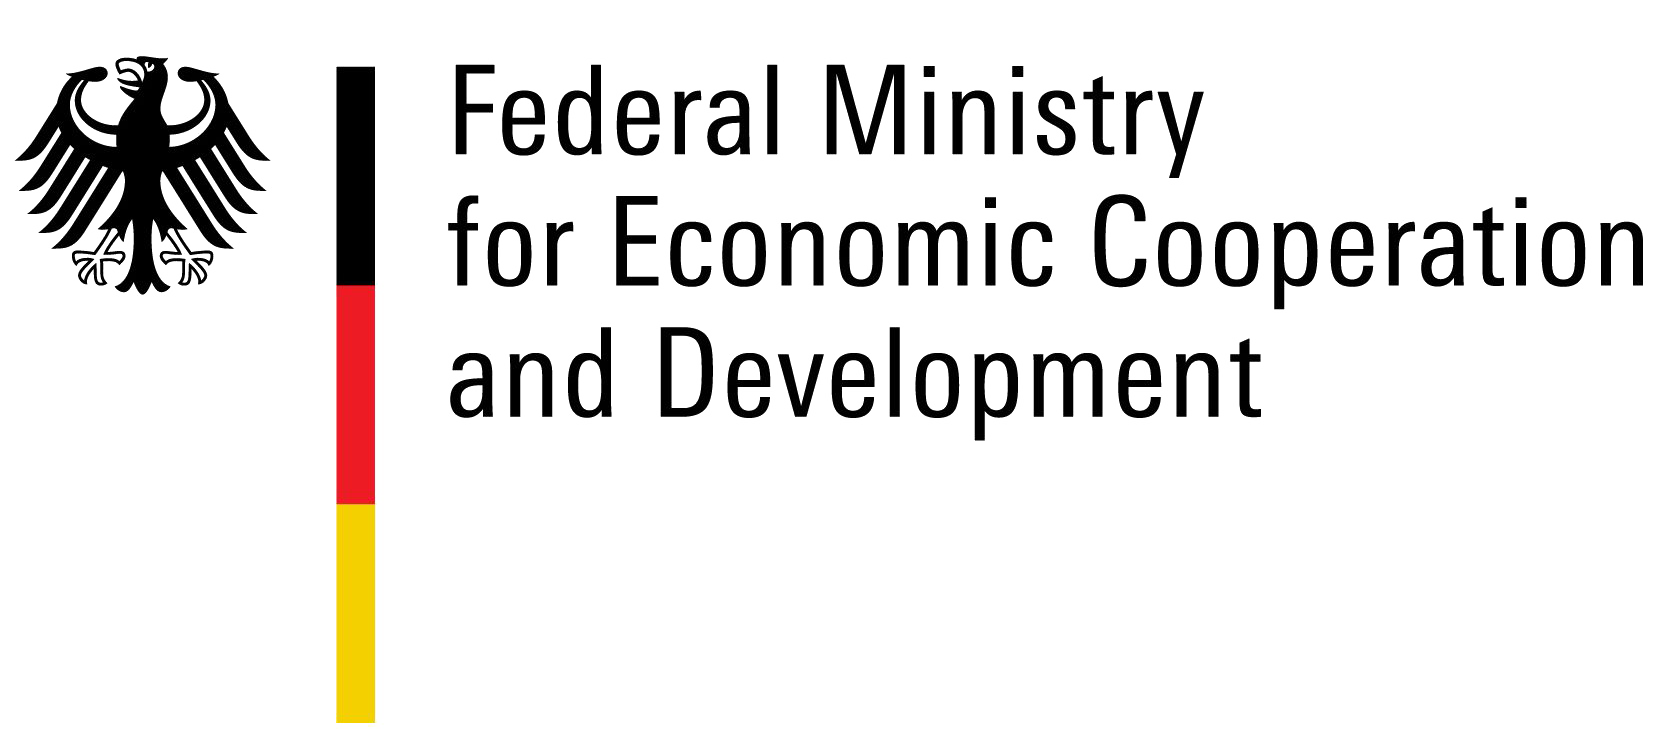 German Federal Ministry for Economic Cooperation and Development (BMZ)